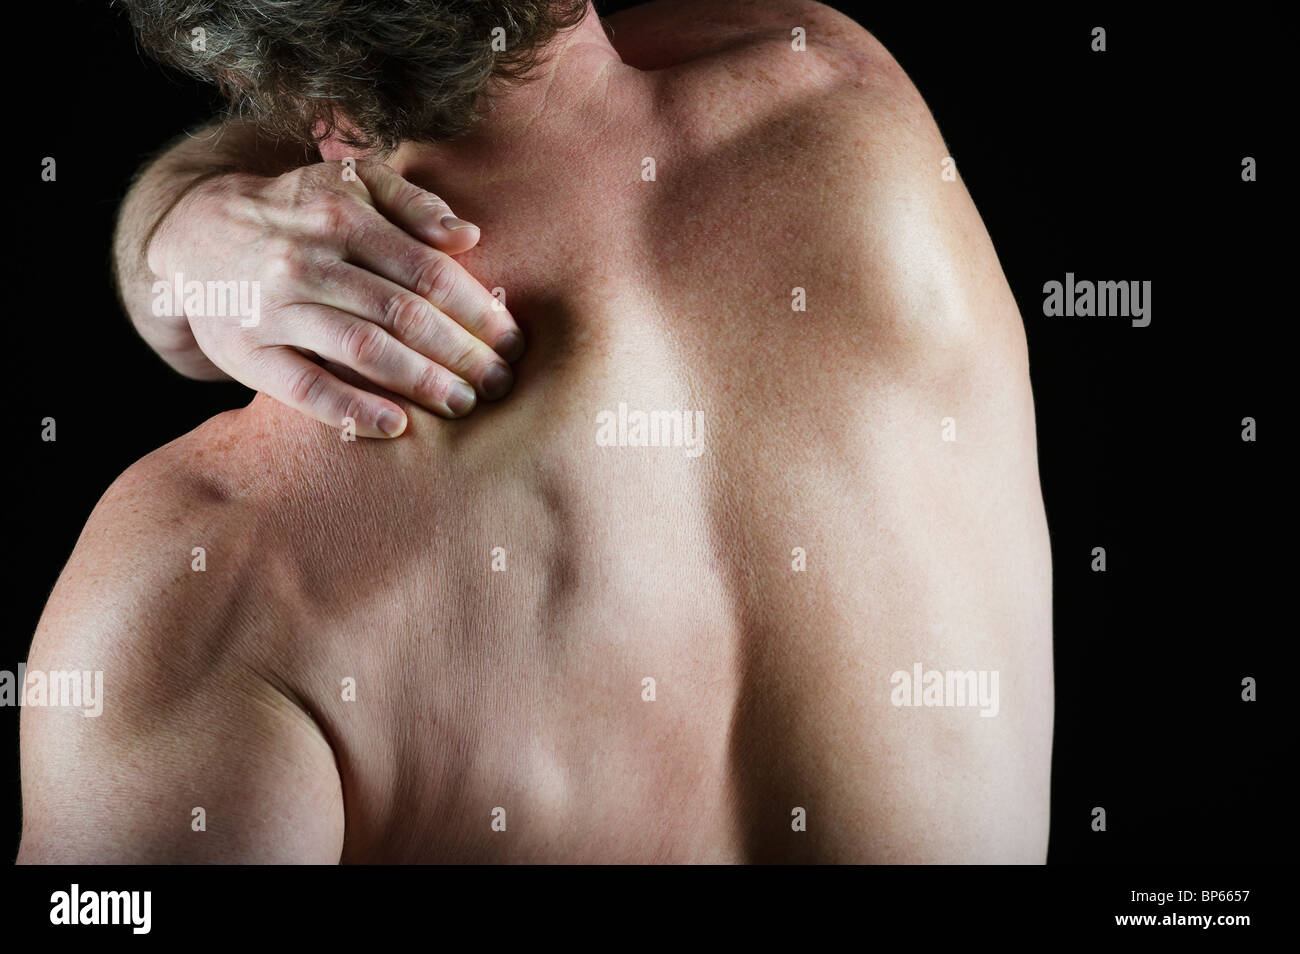 Man with shoulder painStock Photo